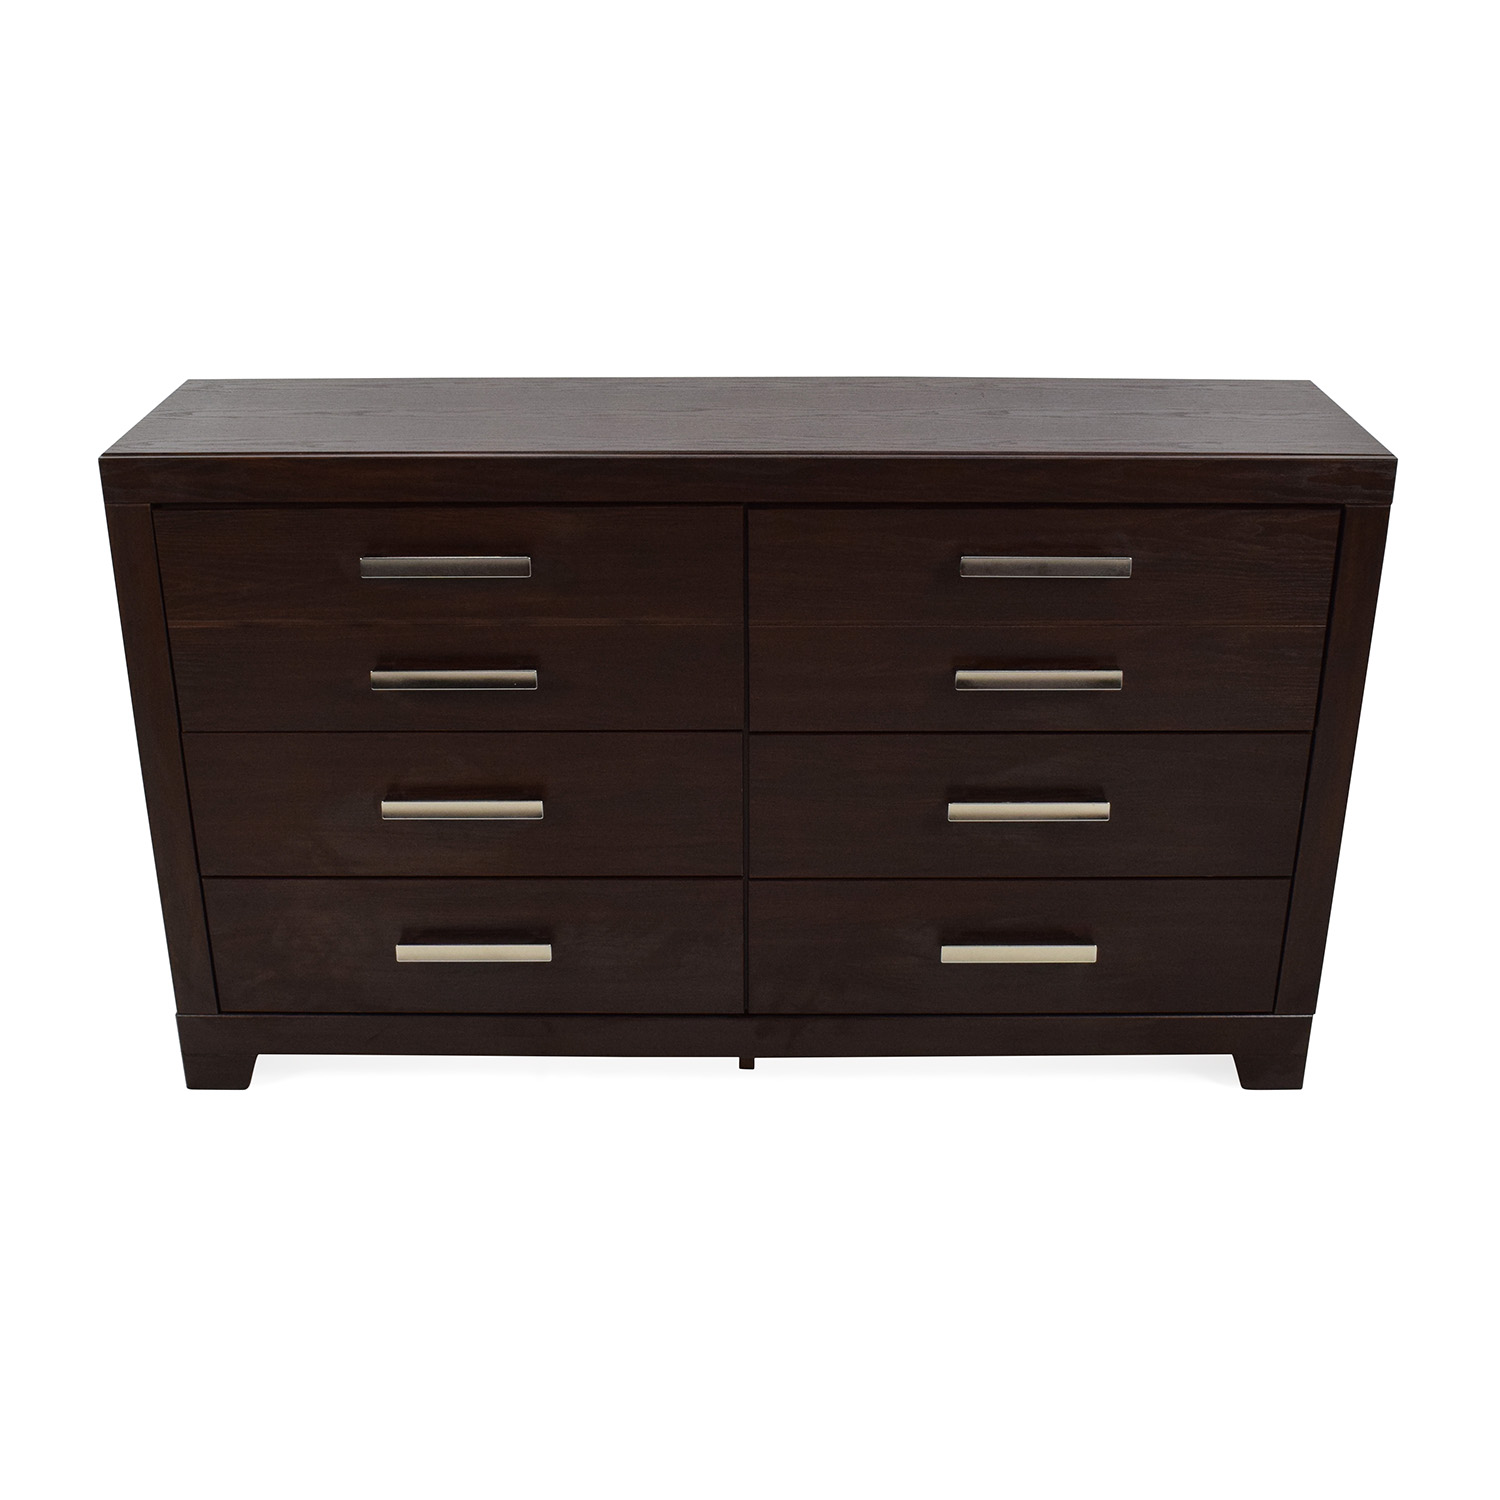 Ashley Furniture Ashley Furniture Aleydis Dresser second hand